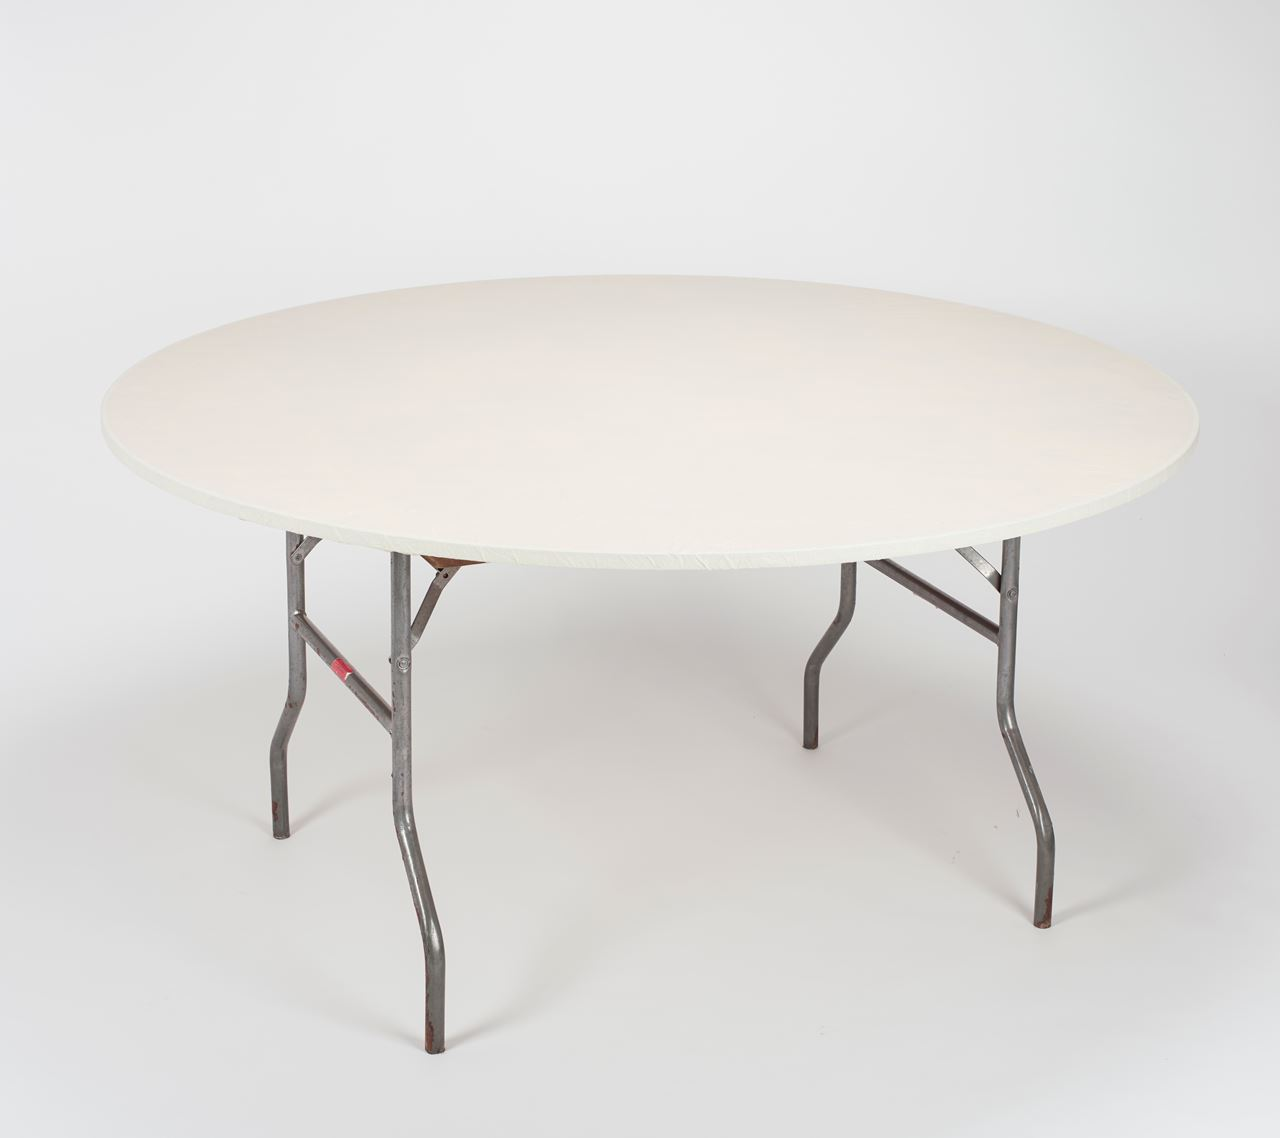 Round Plastic Table Covers With Elastic Edges Folding Table Table